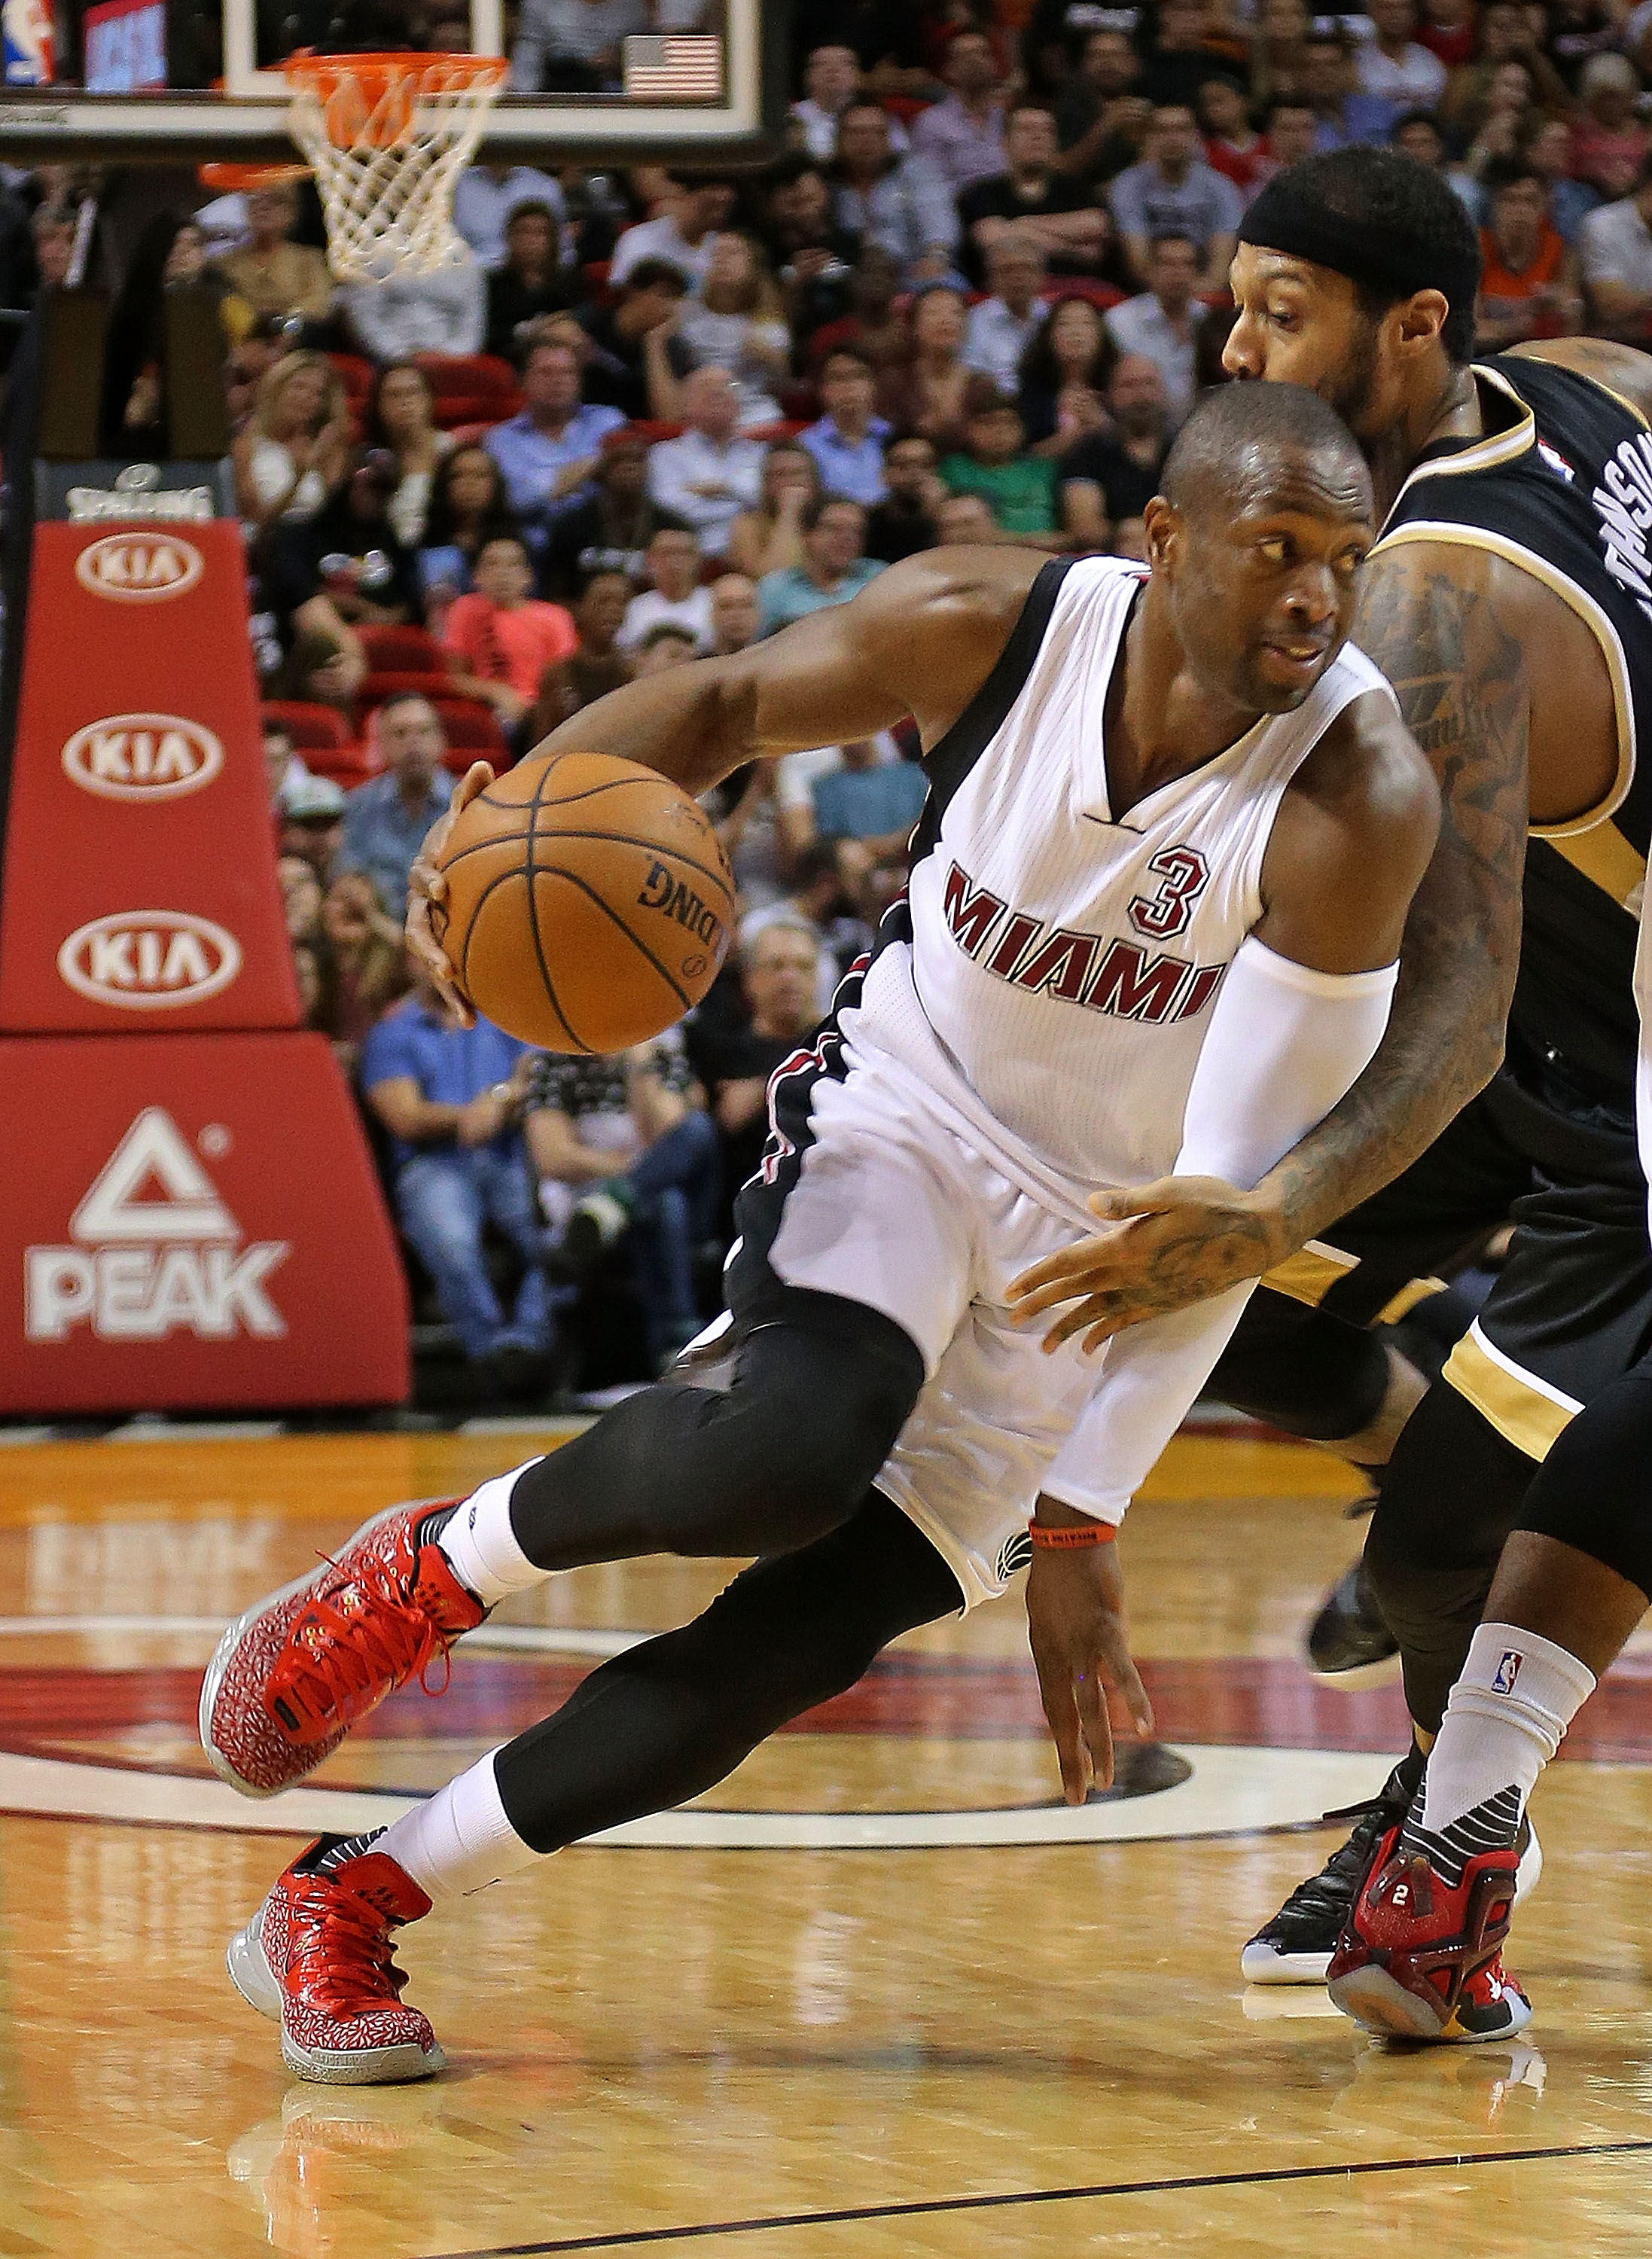 MIAMI, FL - DECEMBER 18:  Dwyane Wade #3 of the Miami Heat drives to the basket during a game against the Toronto Raptors at American Airlines Arena on December 18, 2015 in Miami, Florida. (Photo by Mike Ehrmann/Getty Images)